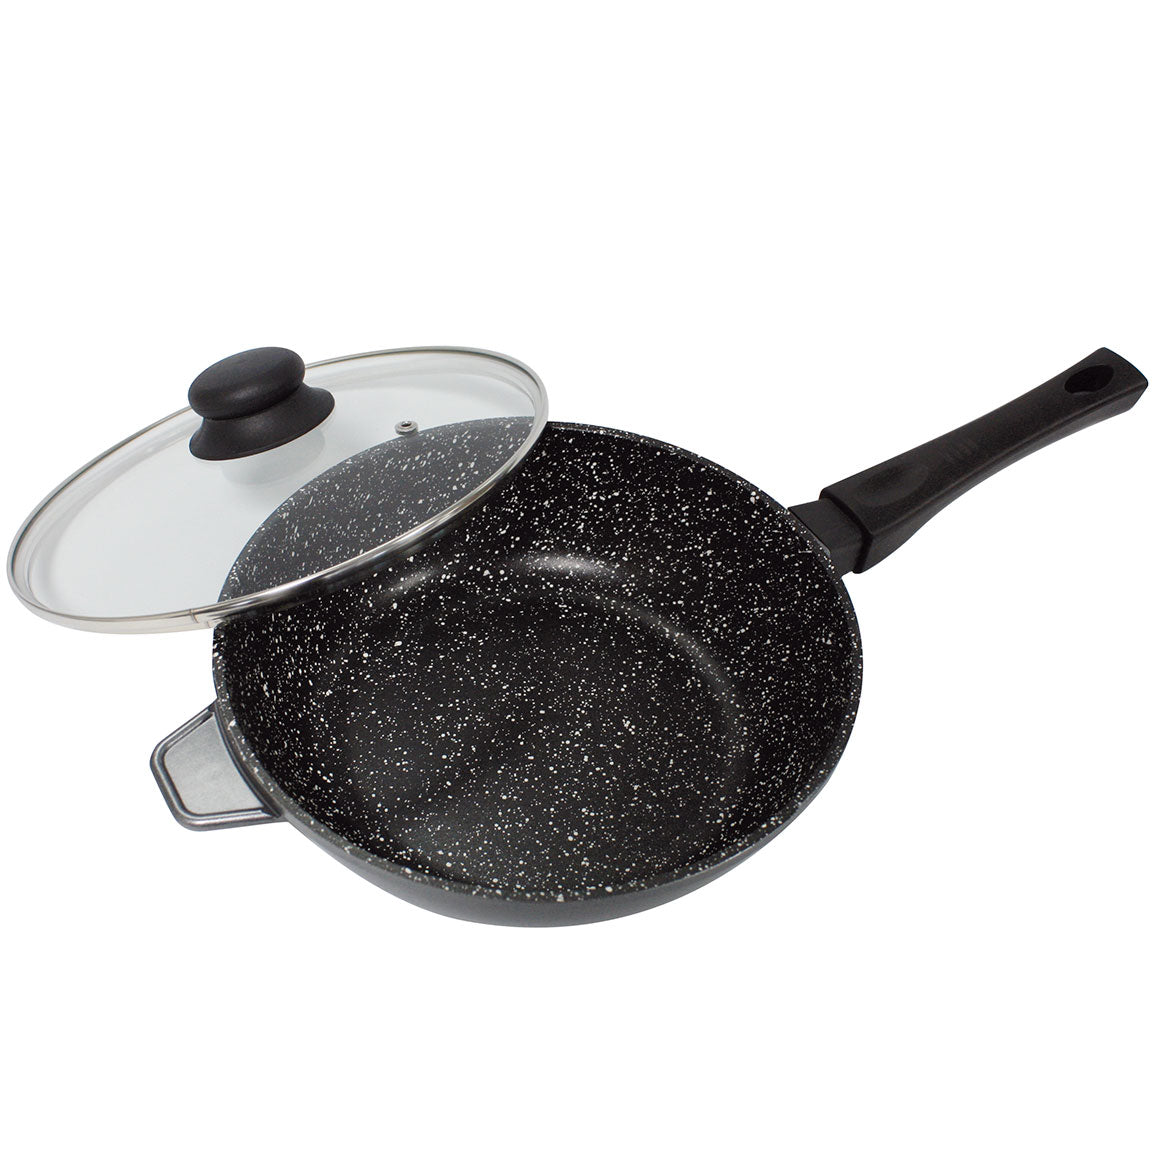 High capacity deep pan | Stone particle made to maintain flavour | 28 cm